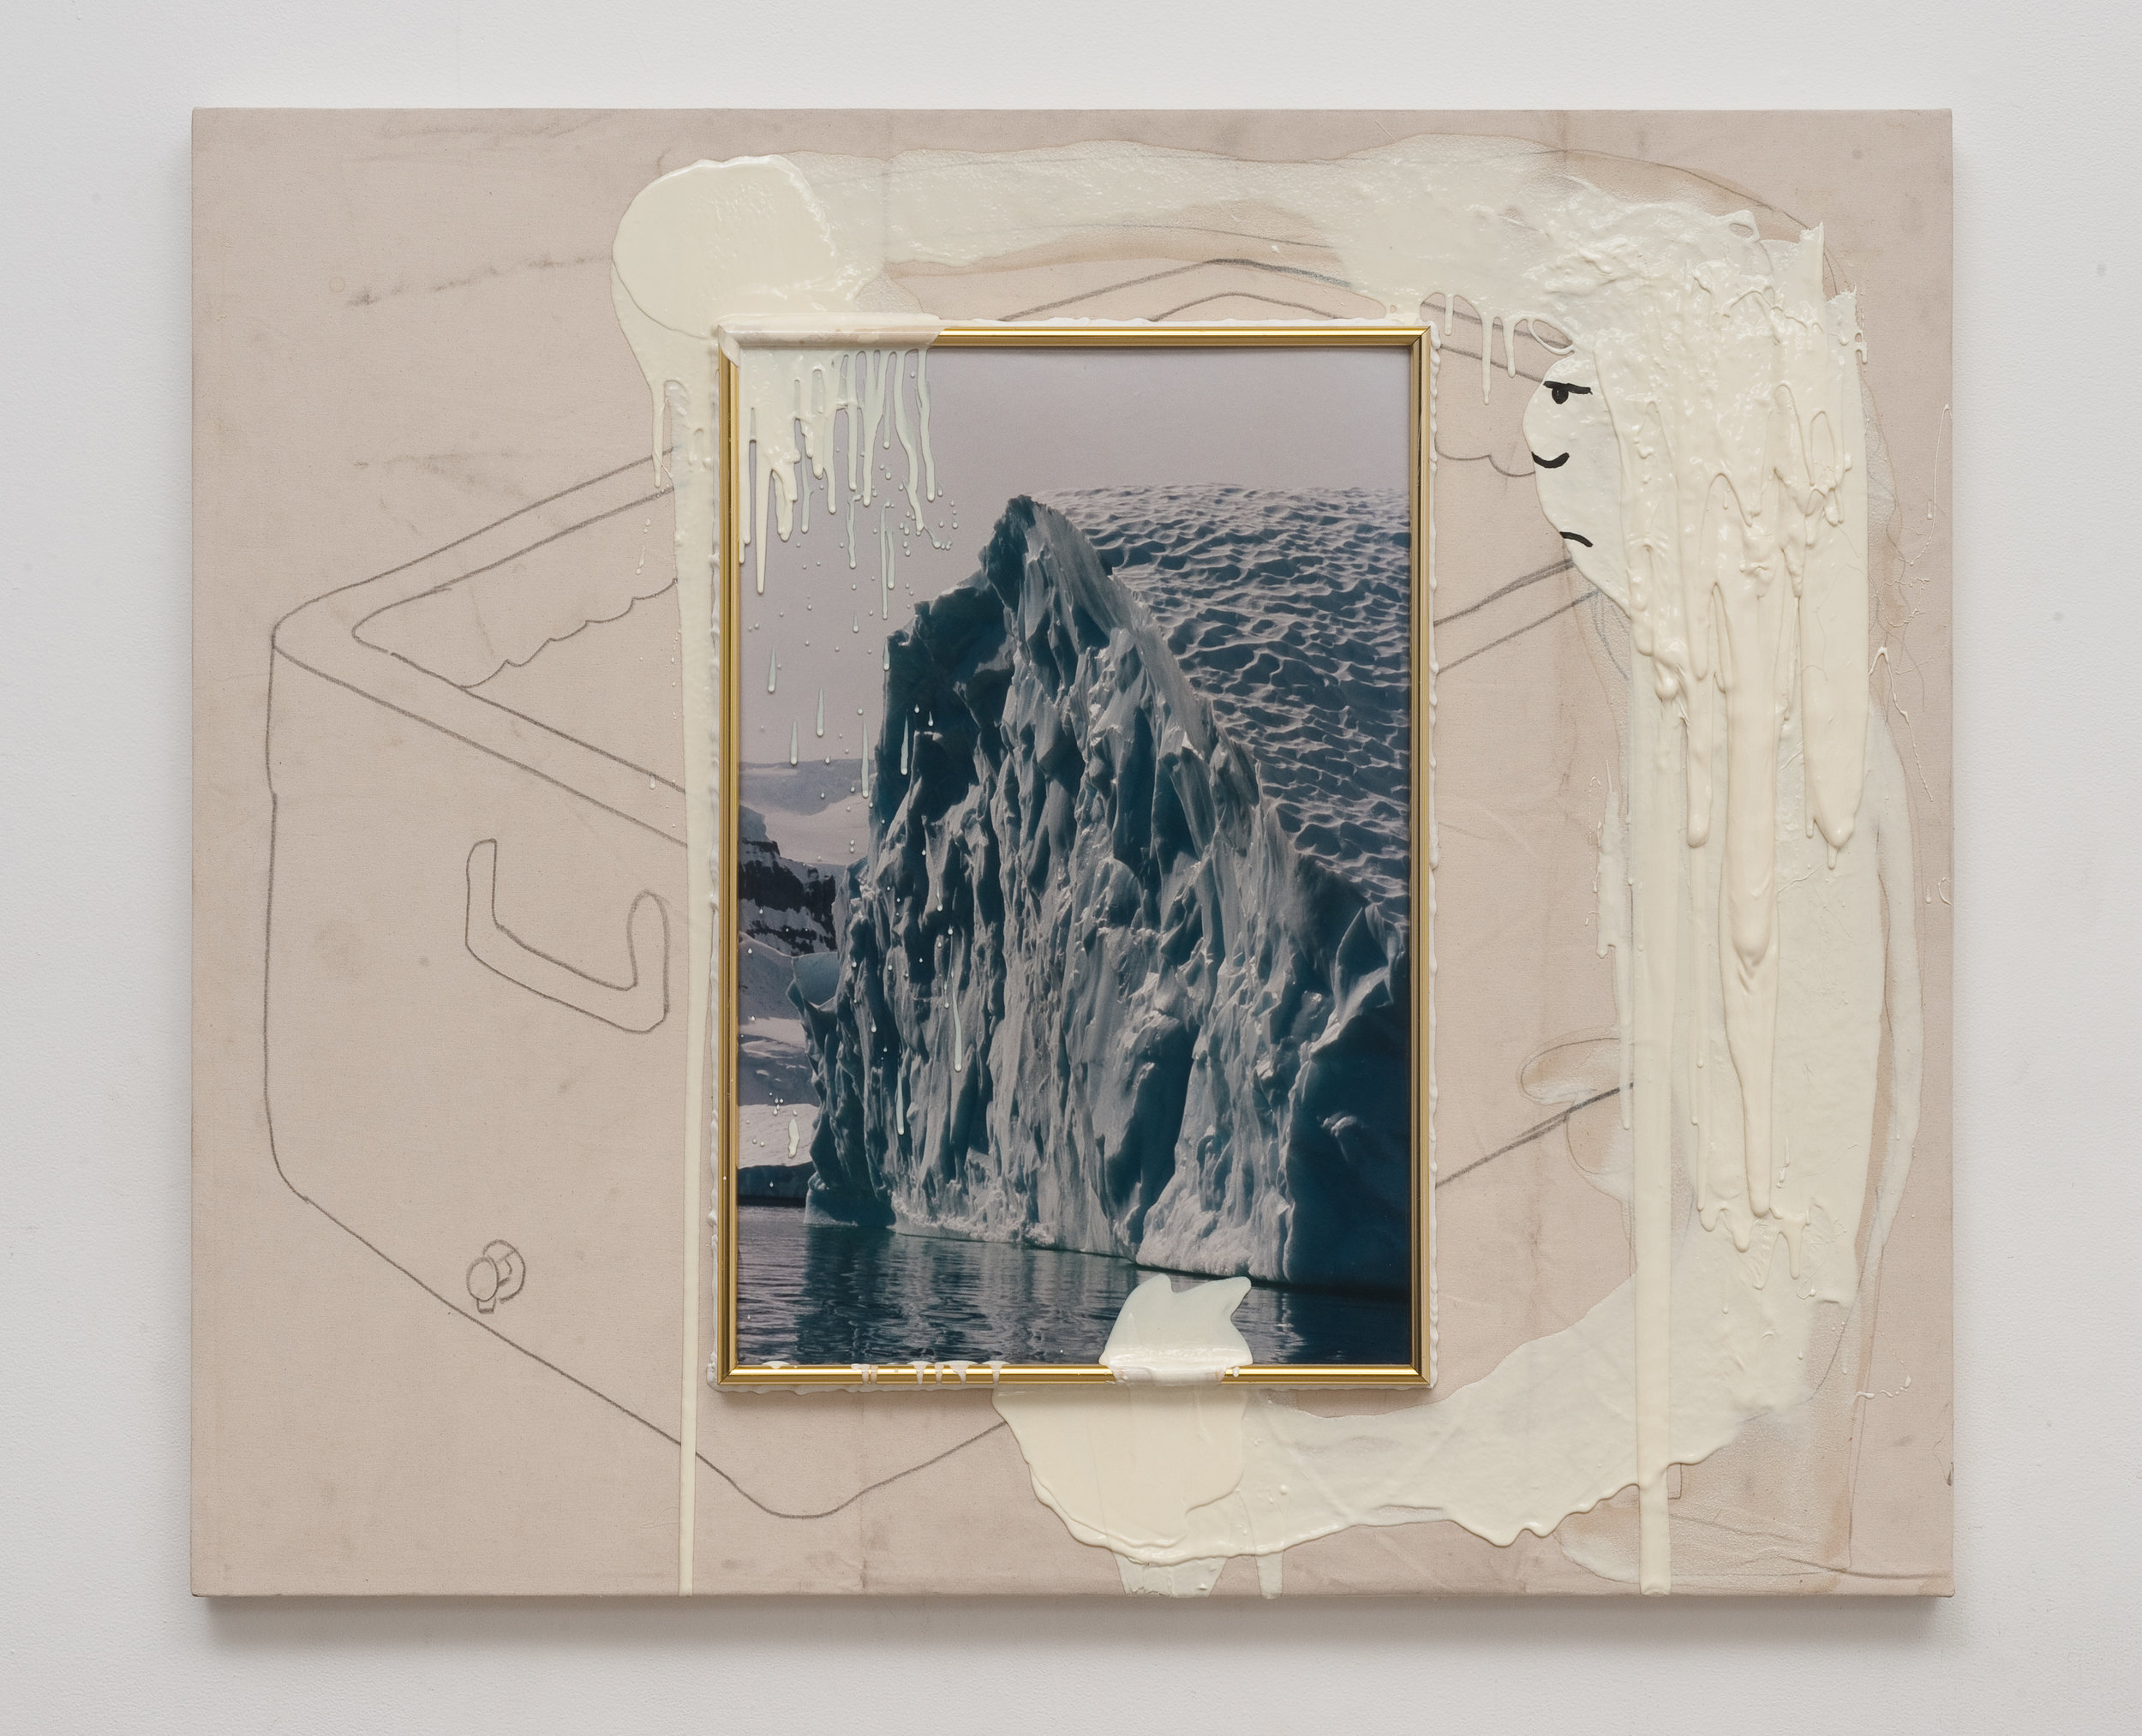 The Iceman Cometh, 2013 canvas, framed image, silicone, urethane, acrylic, pencil, wire, wood 109,2 x 129,6 cm - 43 x 51 inches